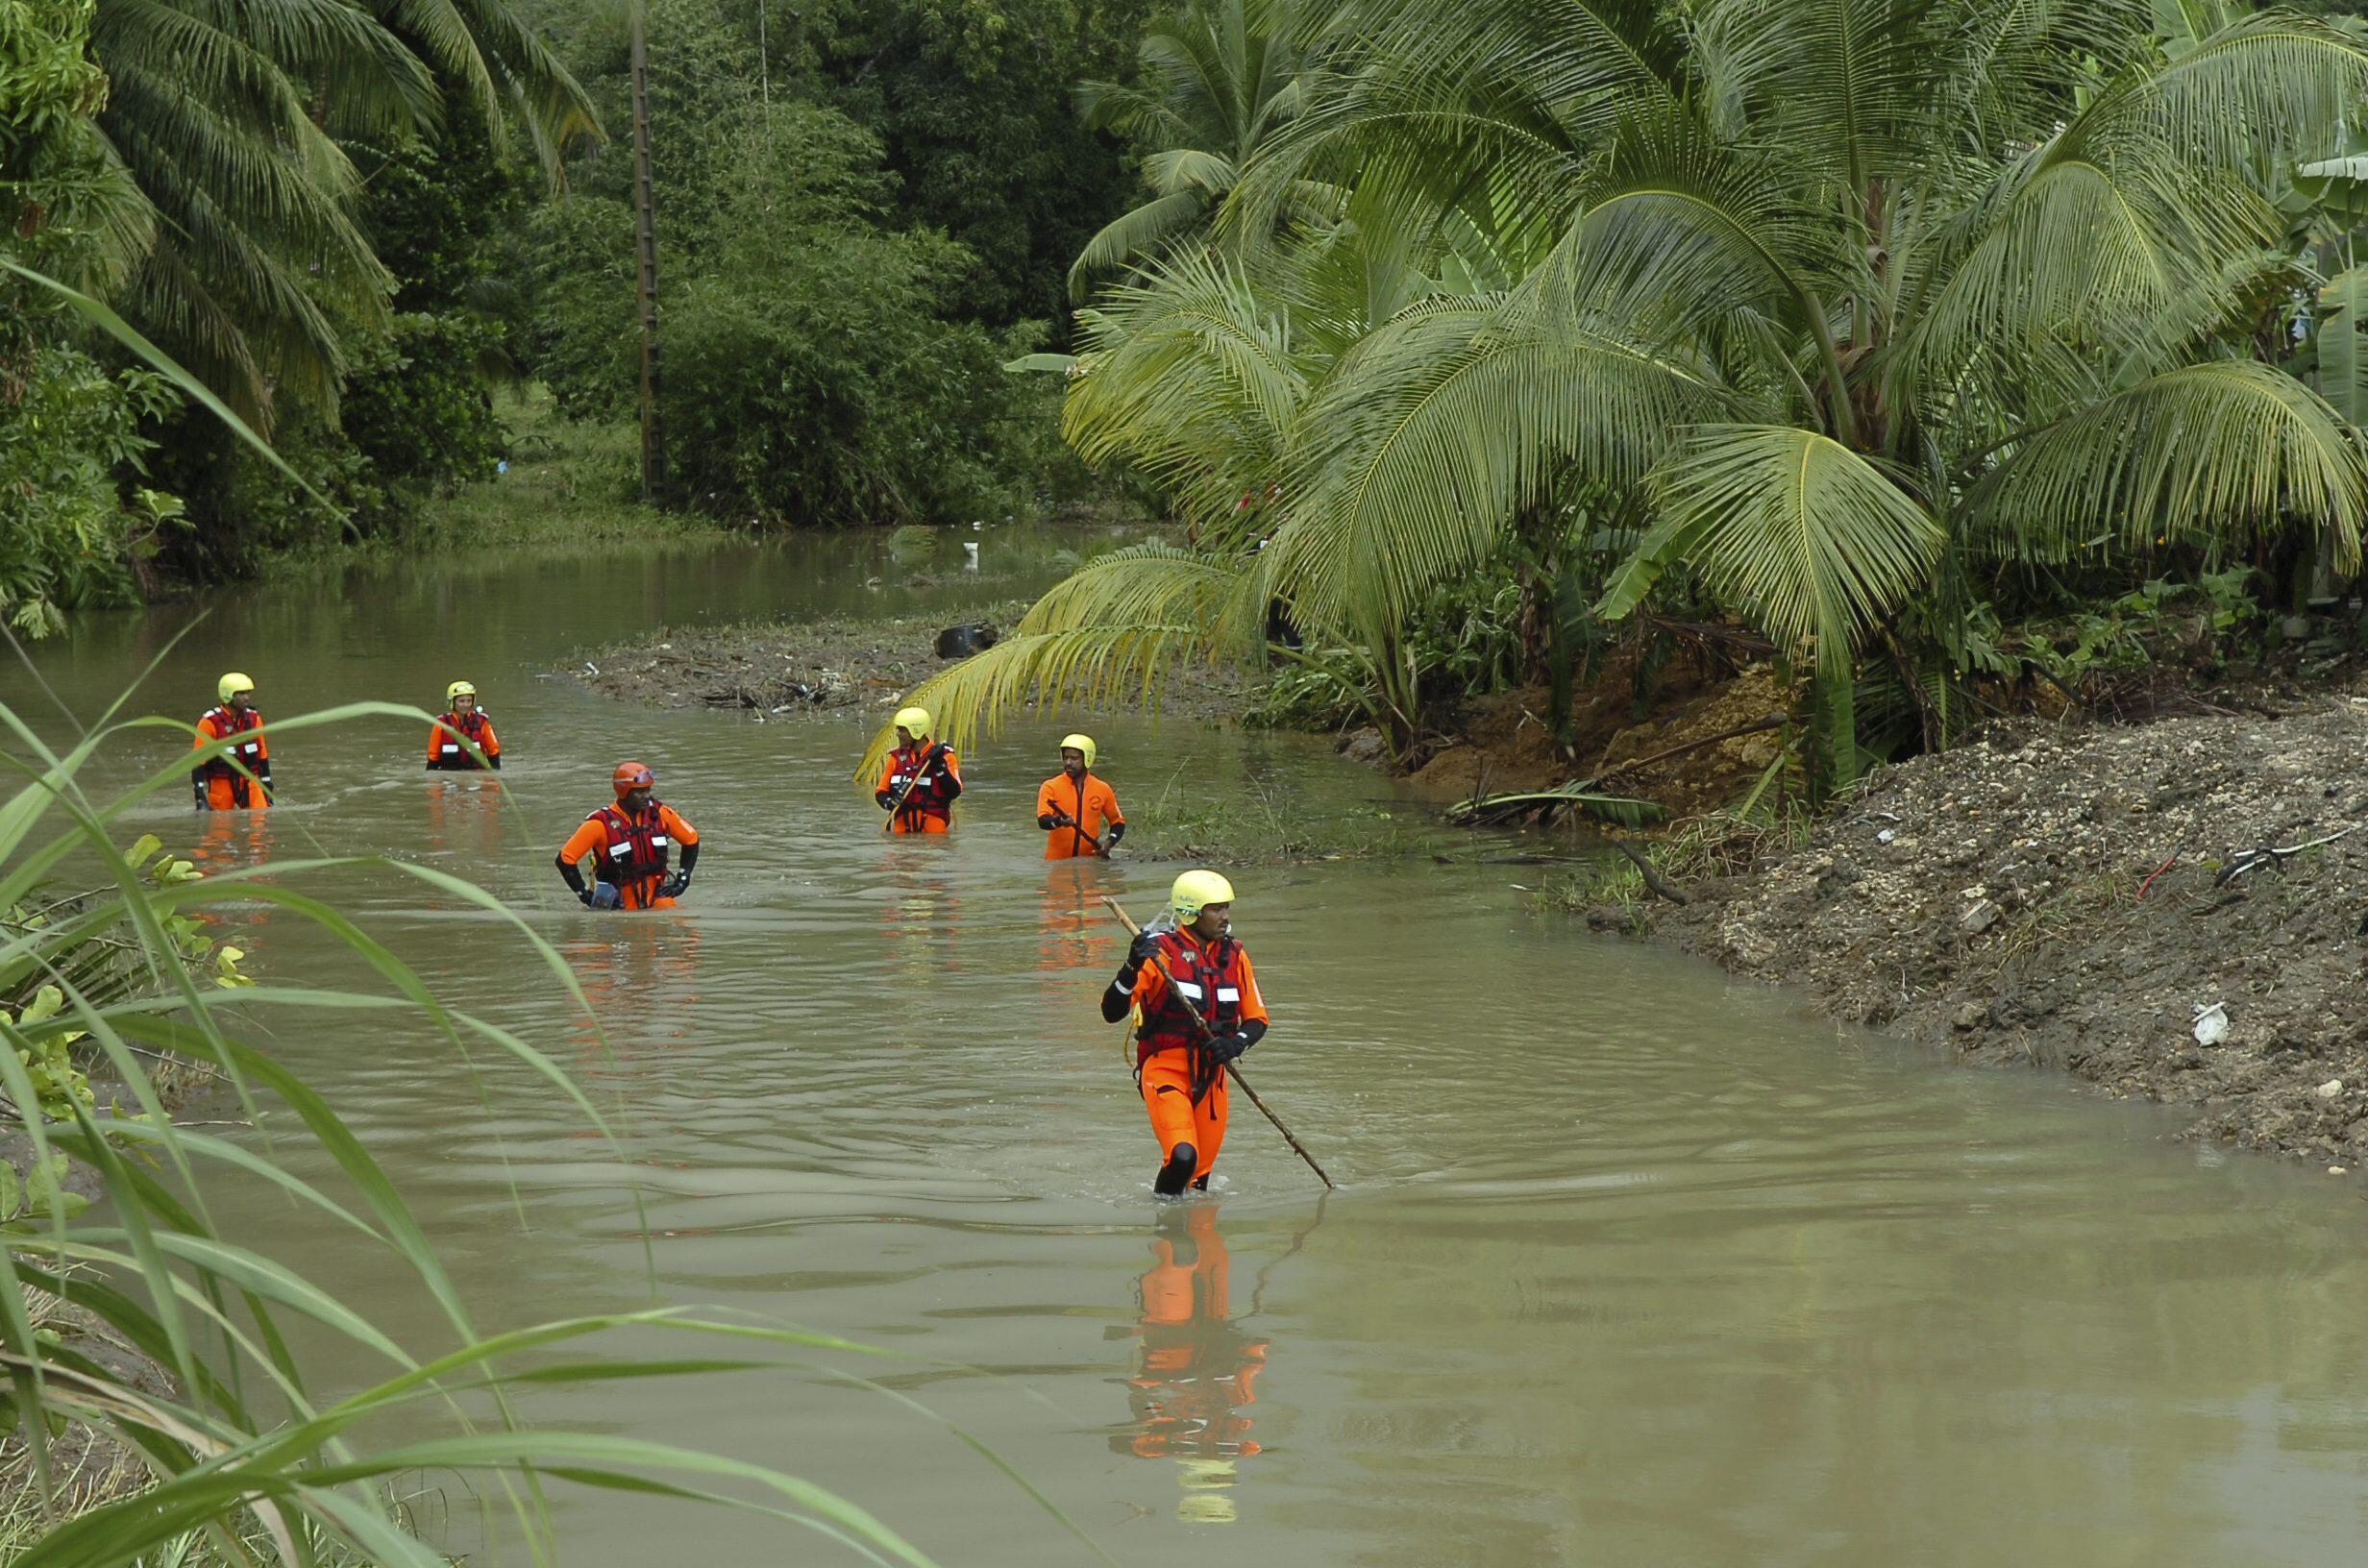 Rescue workers search for flood victims in Guadeloupe